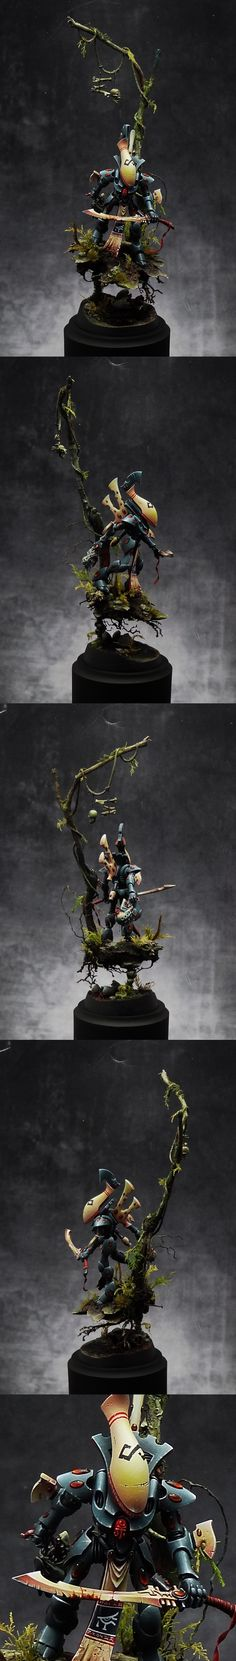 40k - Eldar Wraithguard in the Jungle by dre4mit